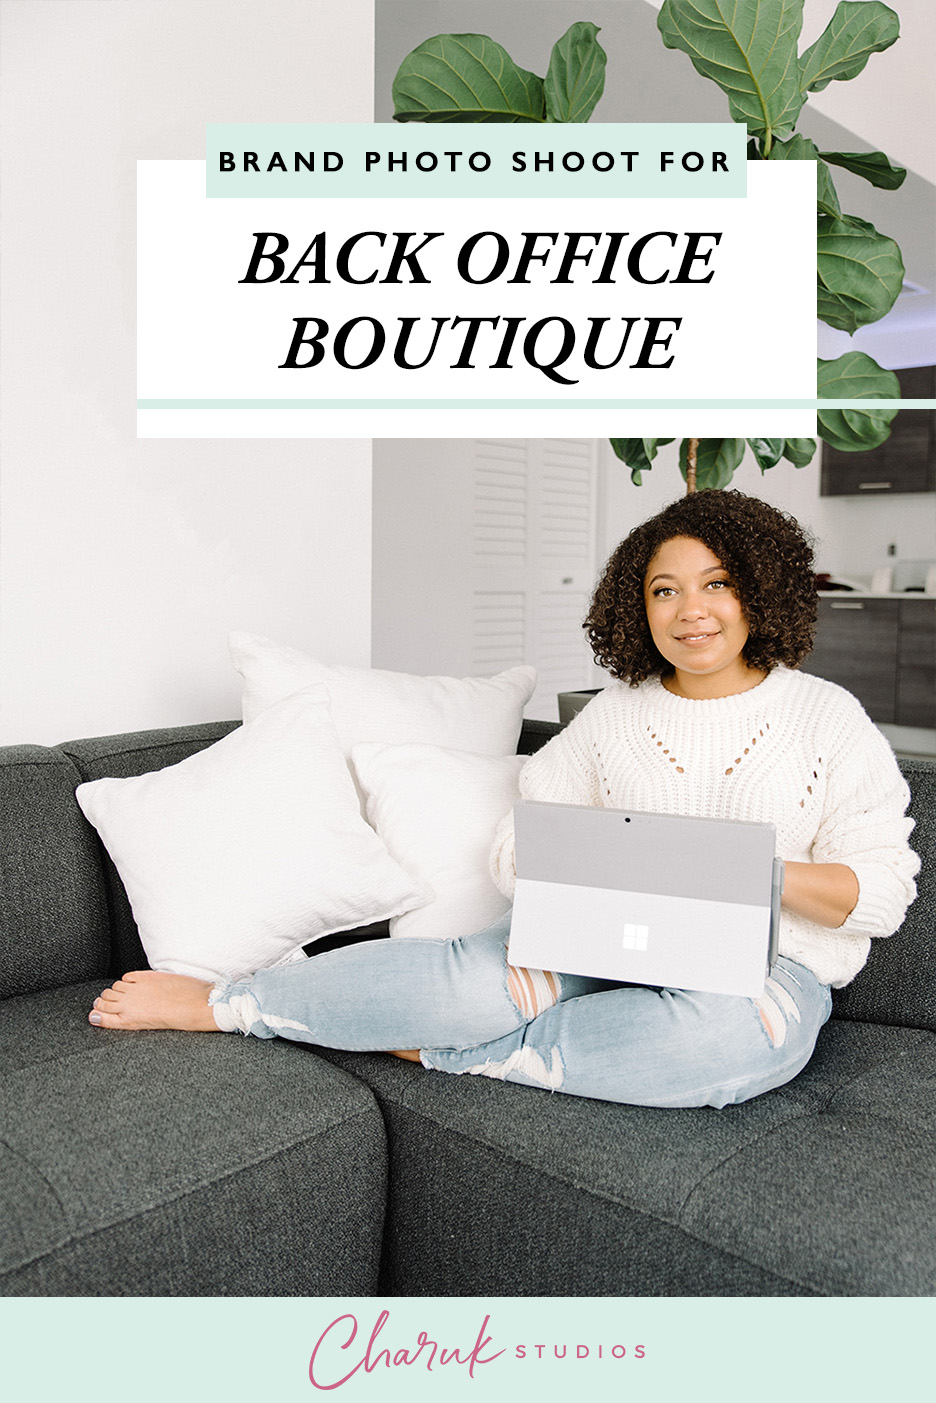 Brand Photo Shoot for Back Office Boutique by Charuk Studios